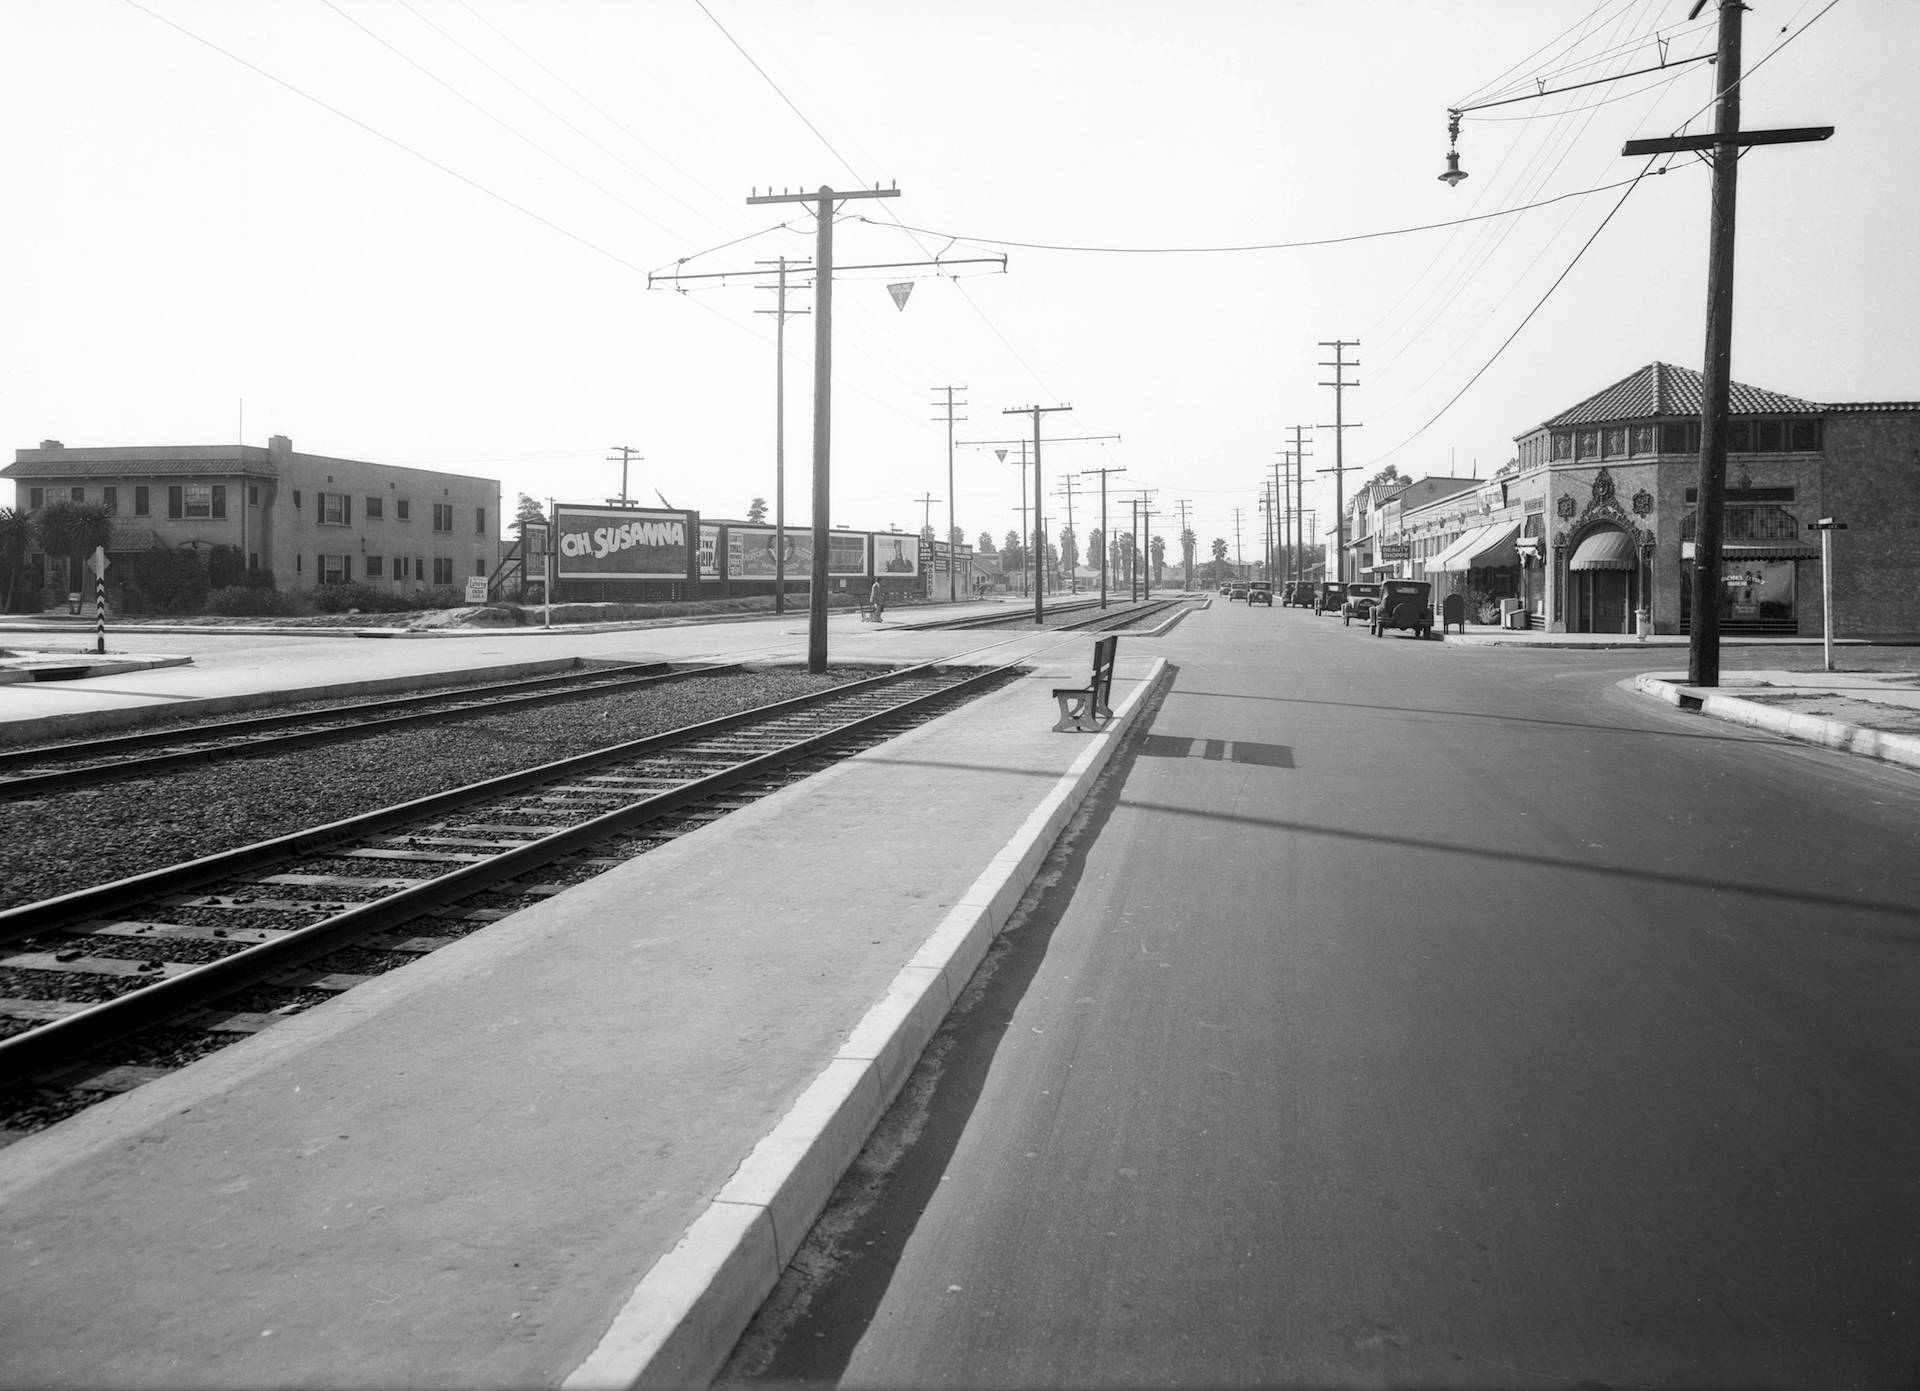 Electric railway tracks once ran down the median of Venice Boulevard, seen here at Fifth Avenue in 1929. Courtesy of the USC Libraries - Dick Whittington Photography Collection.